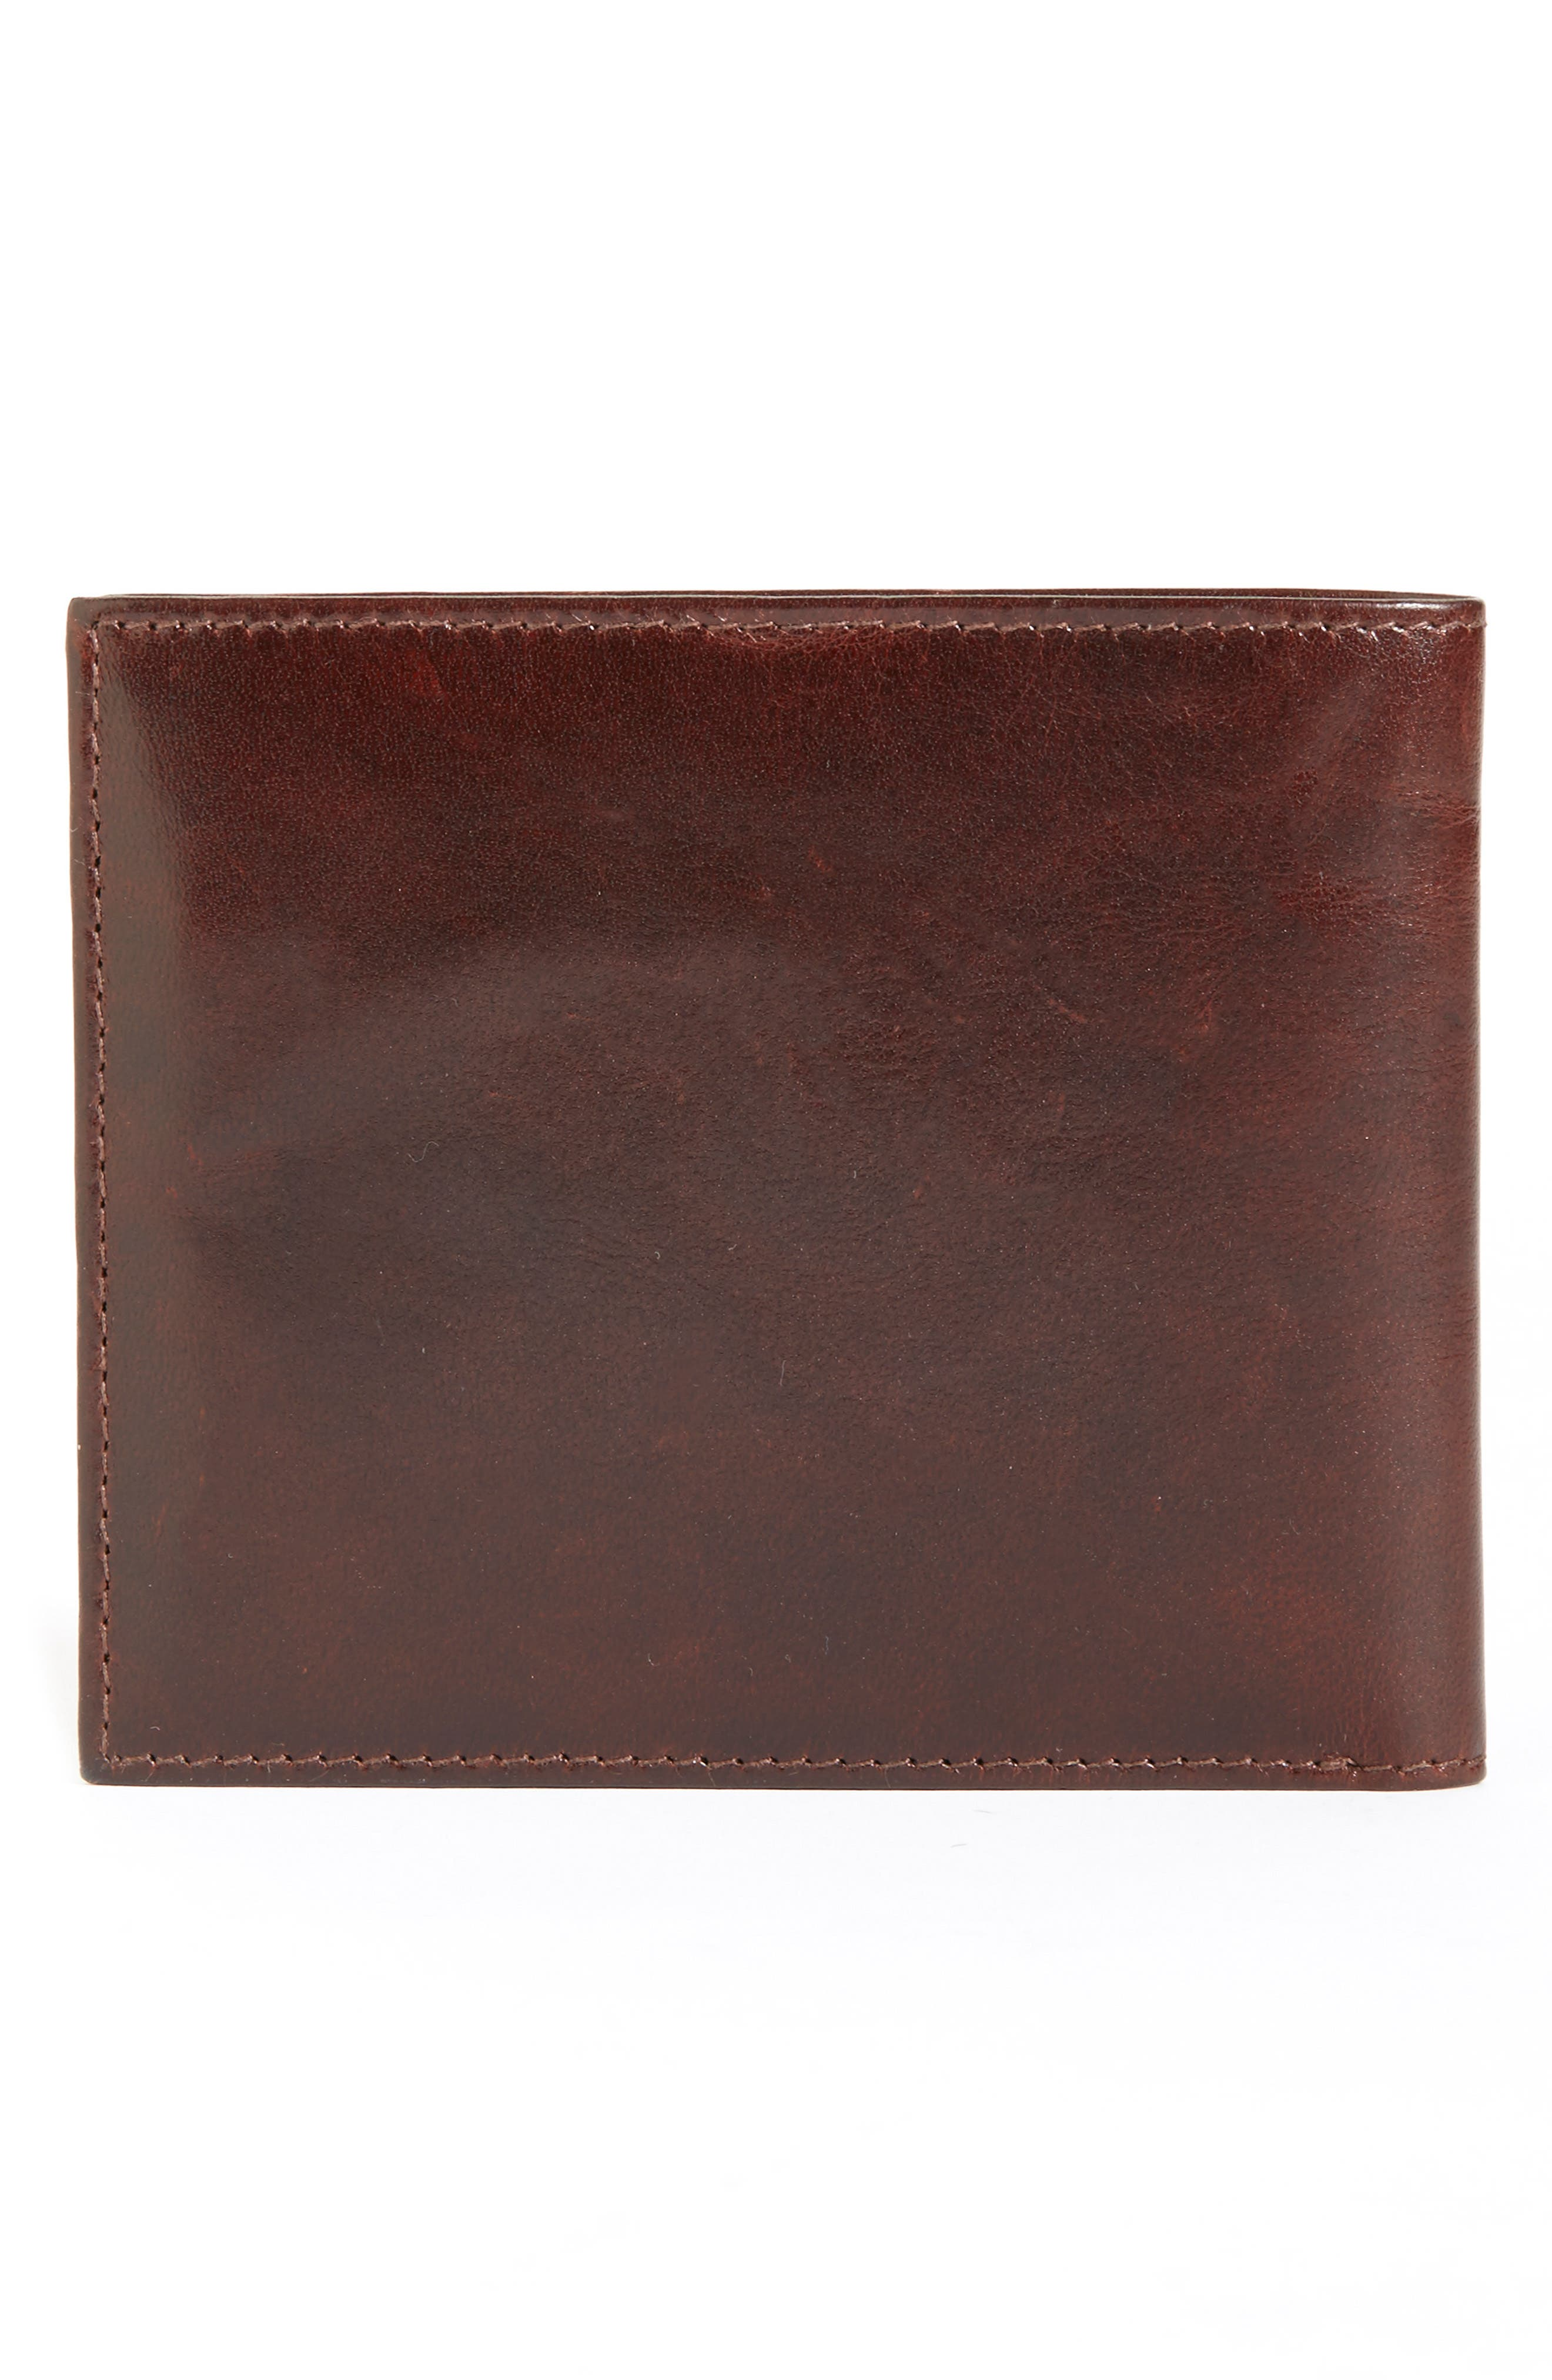 Carouse Leather Wallet,                             Main thumbnail 1, color,                             217